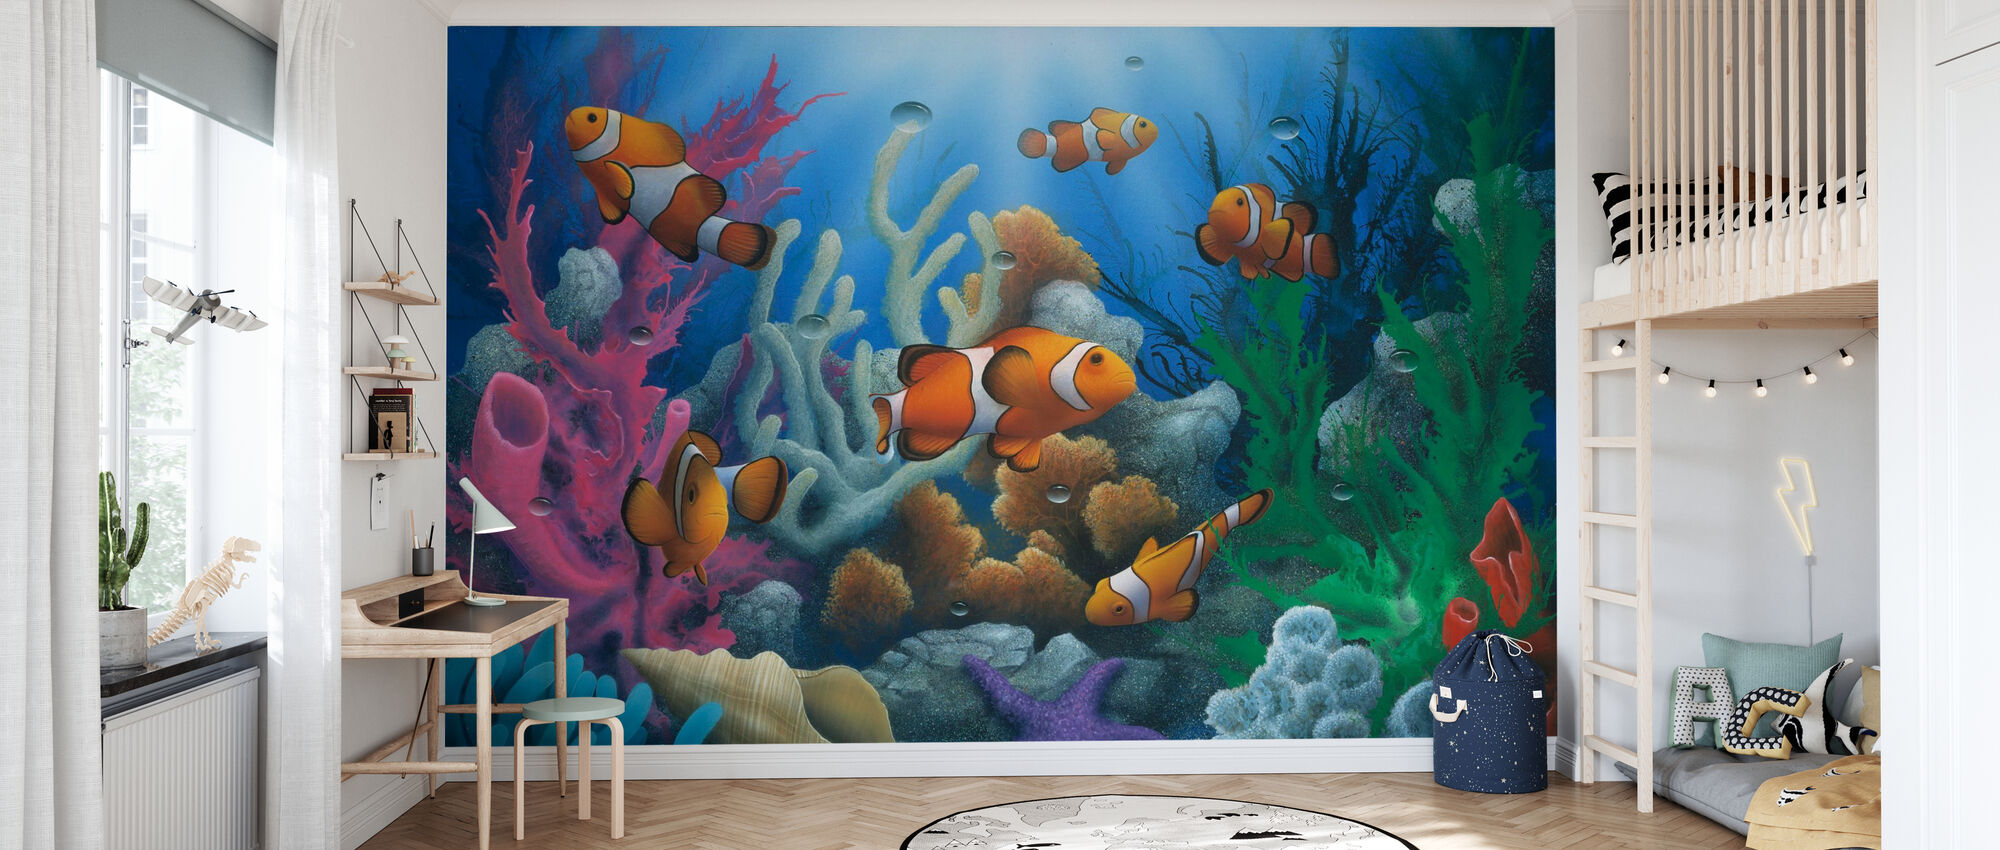 Here Come the Clowns - Wallpaper - Kids Room